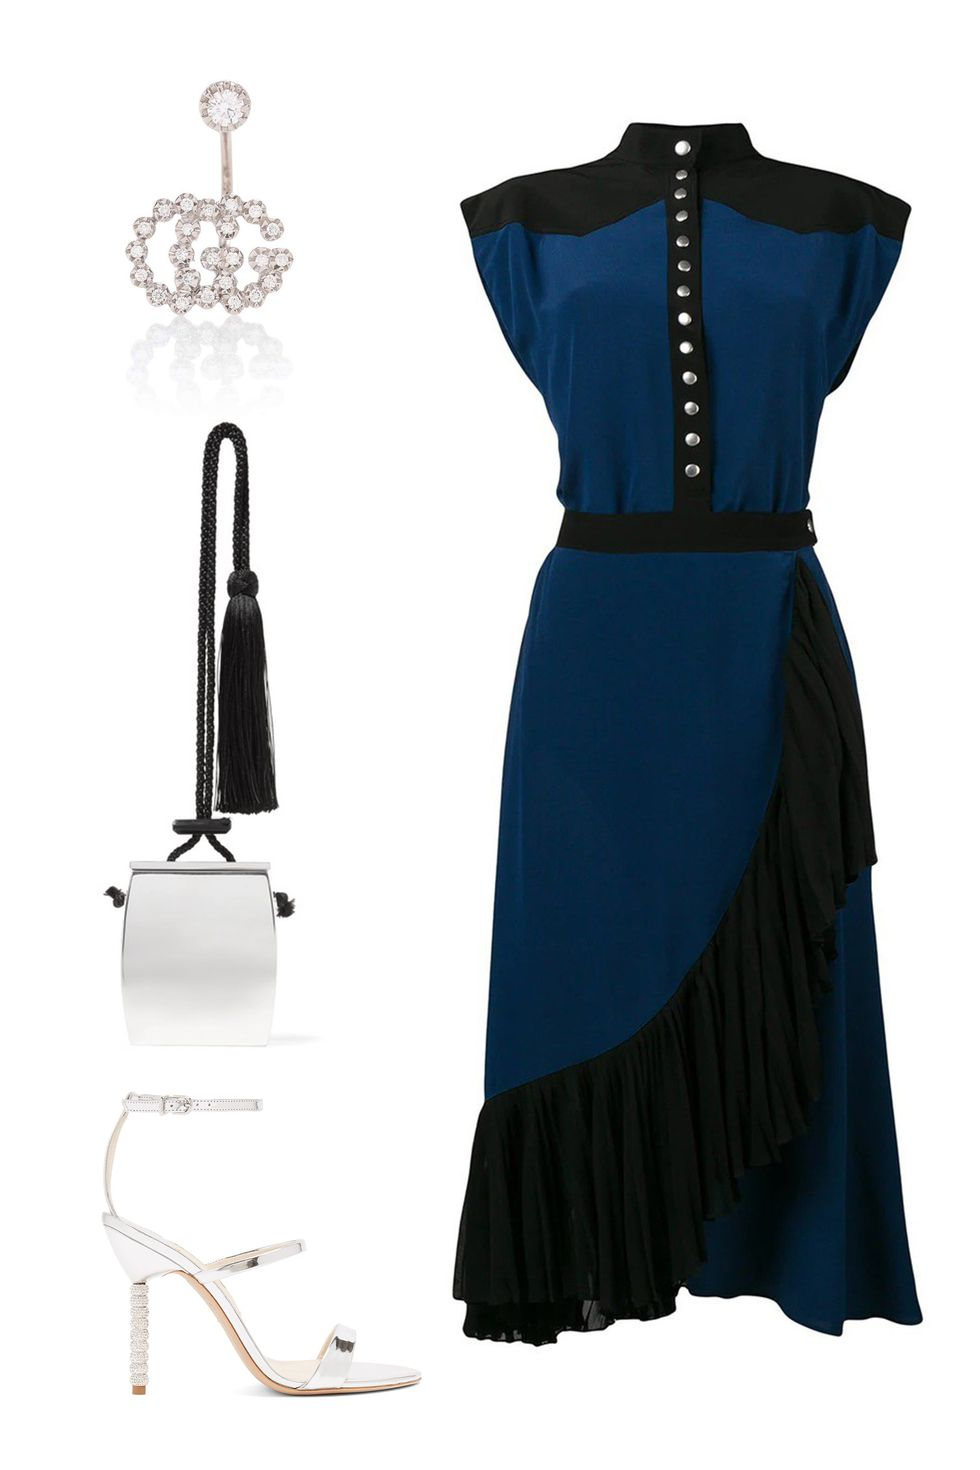 what-to-wear-for-a-fall-wedding-guest-outfit-autumn-blue-navy-dress-shirt-midi-ruffle-white-bag-white-shoe-sandalh-dinner.jpg